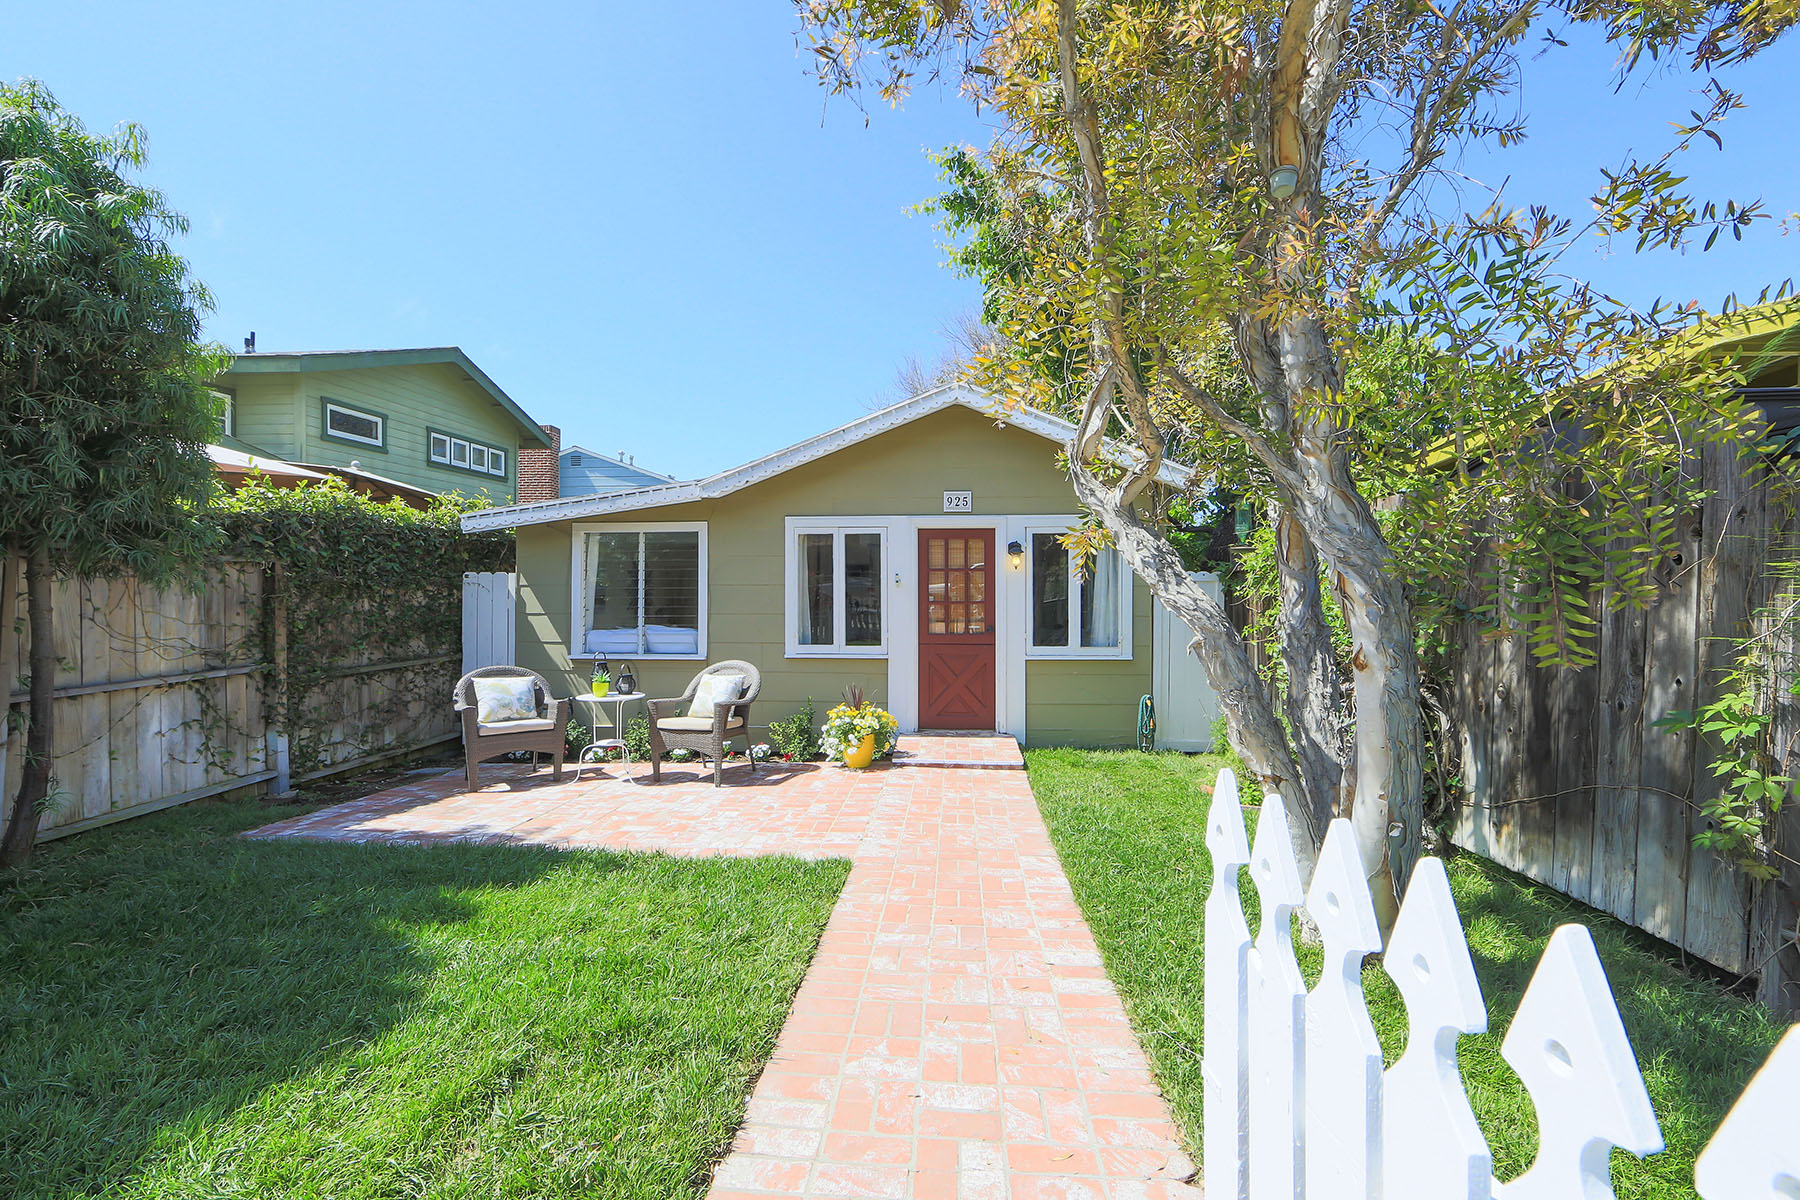 Single Family Home for Sale at Avalon Cottage 925 Avalon St Laguna Beach, California 92651 United States